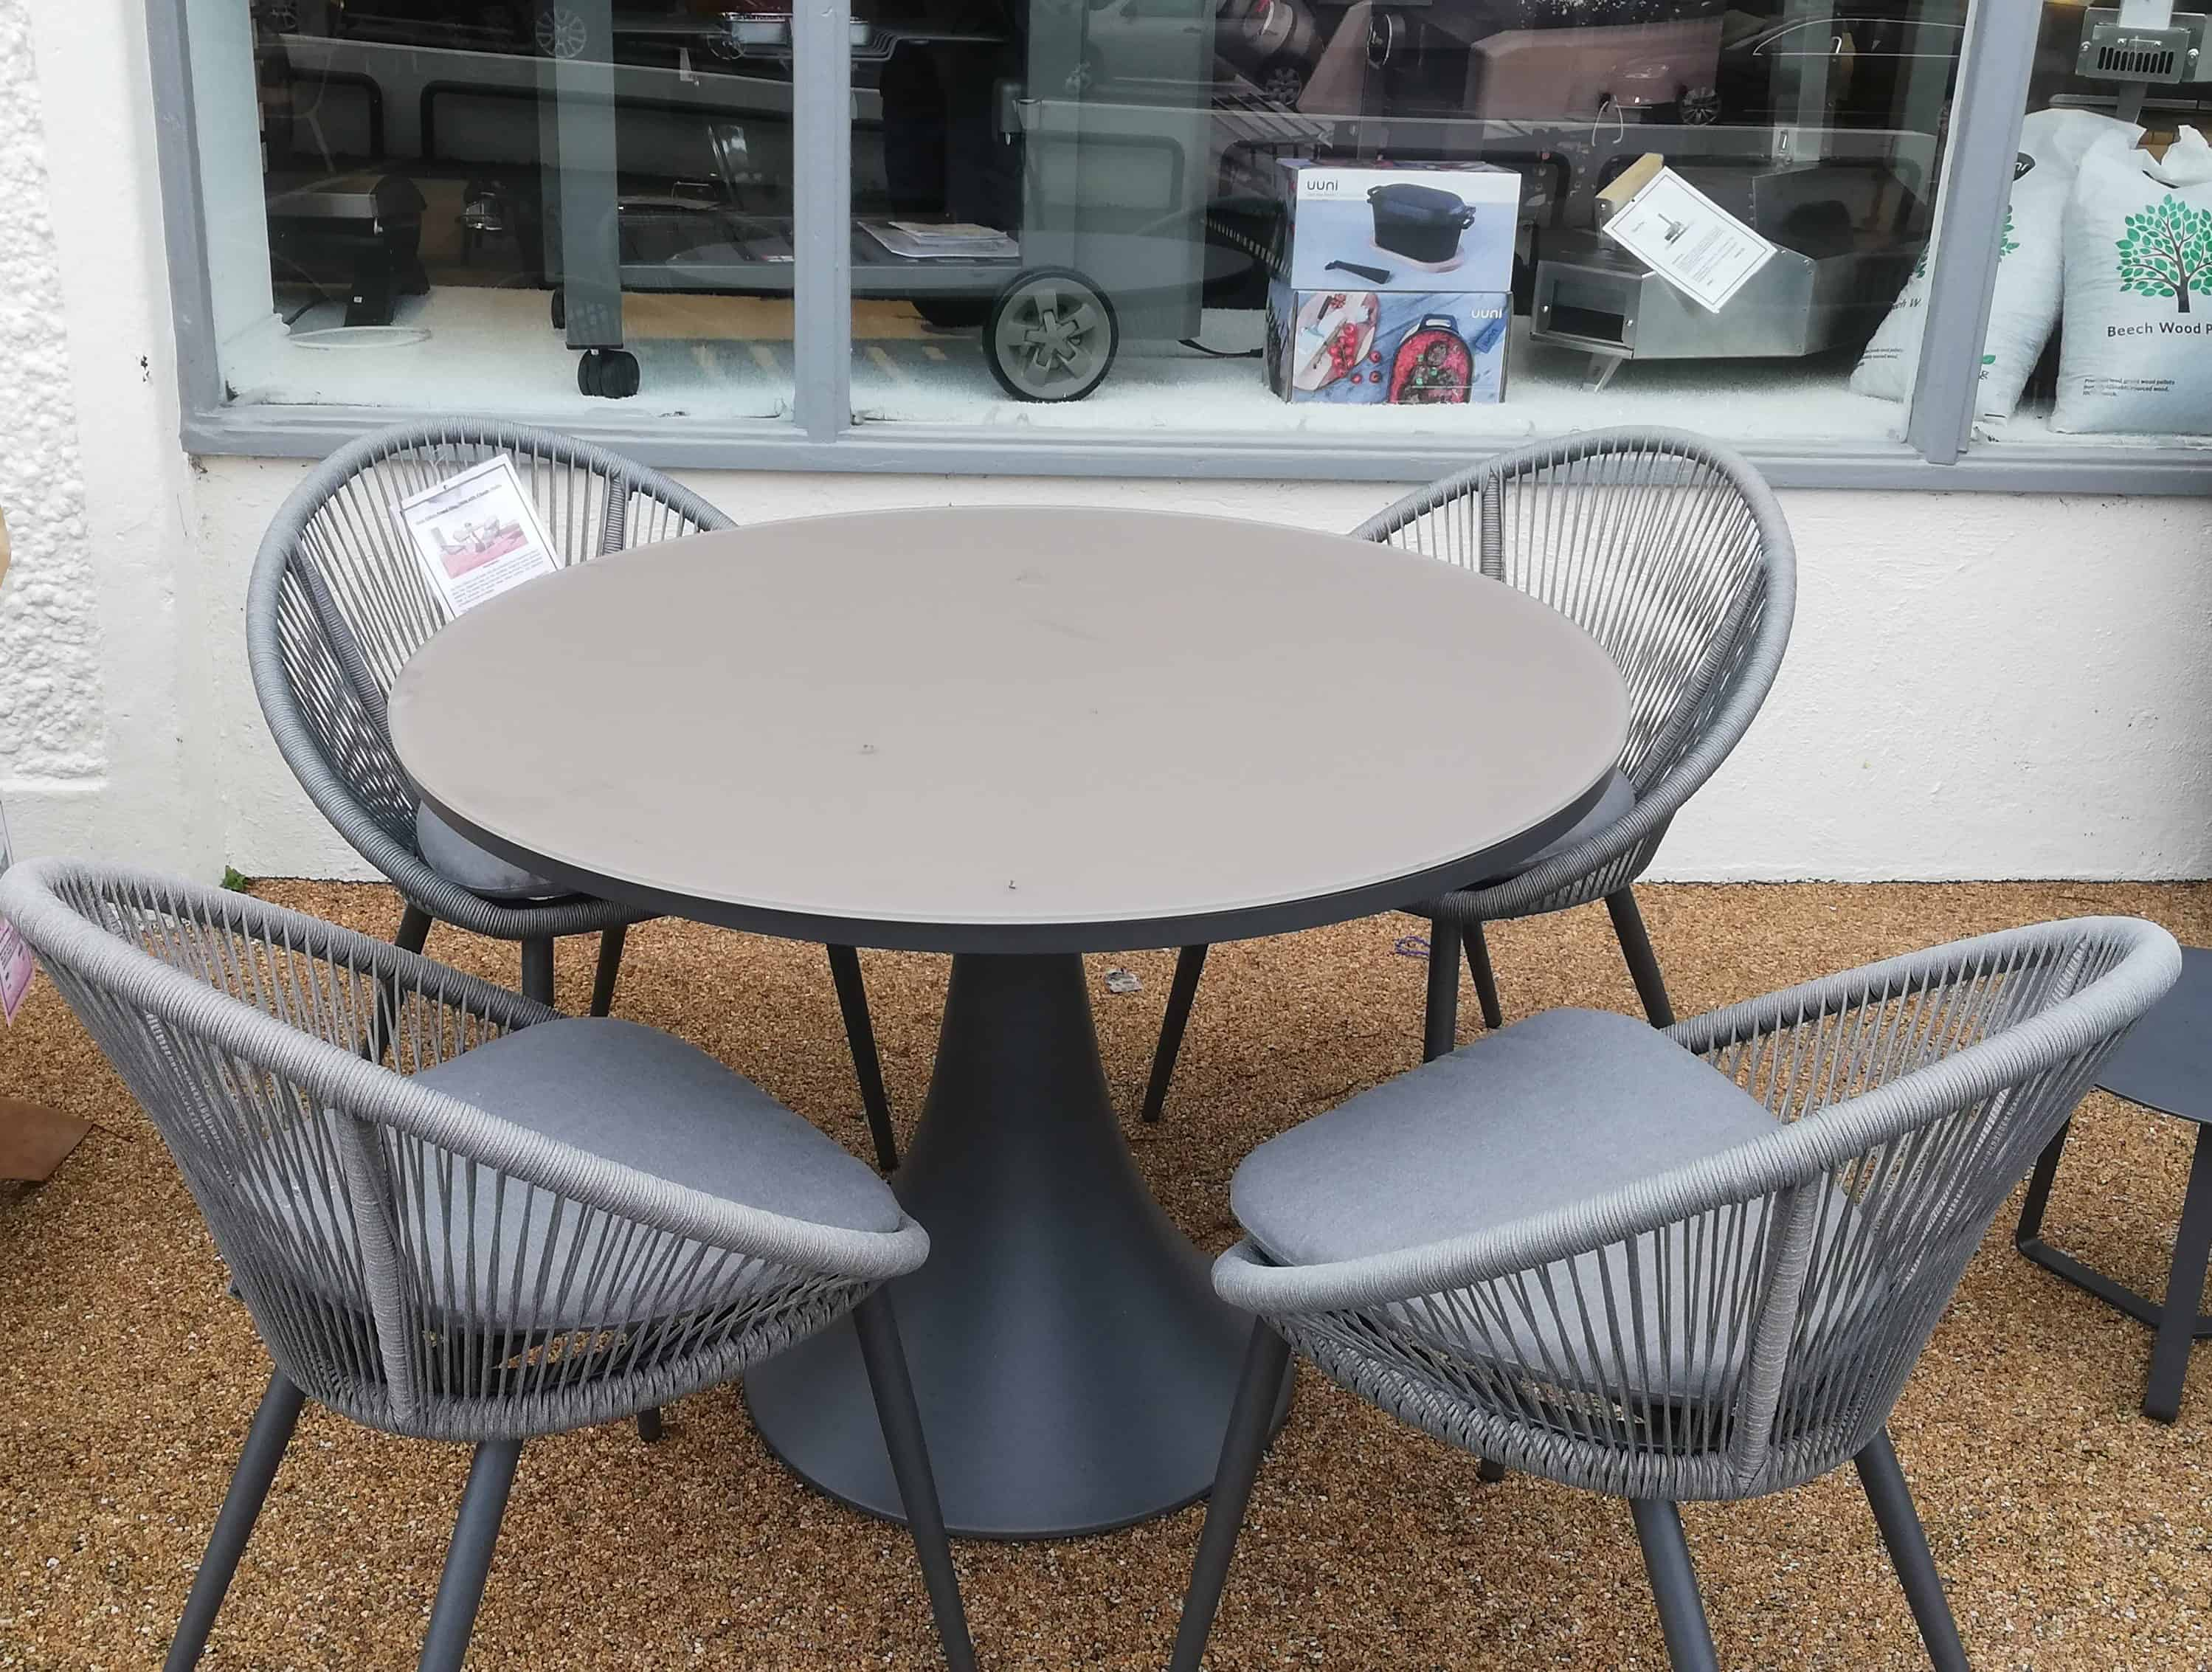 Fano Round Glass Table With 4 Spade Chairs Garden Furniture